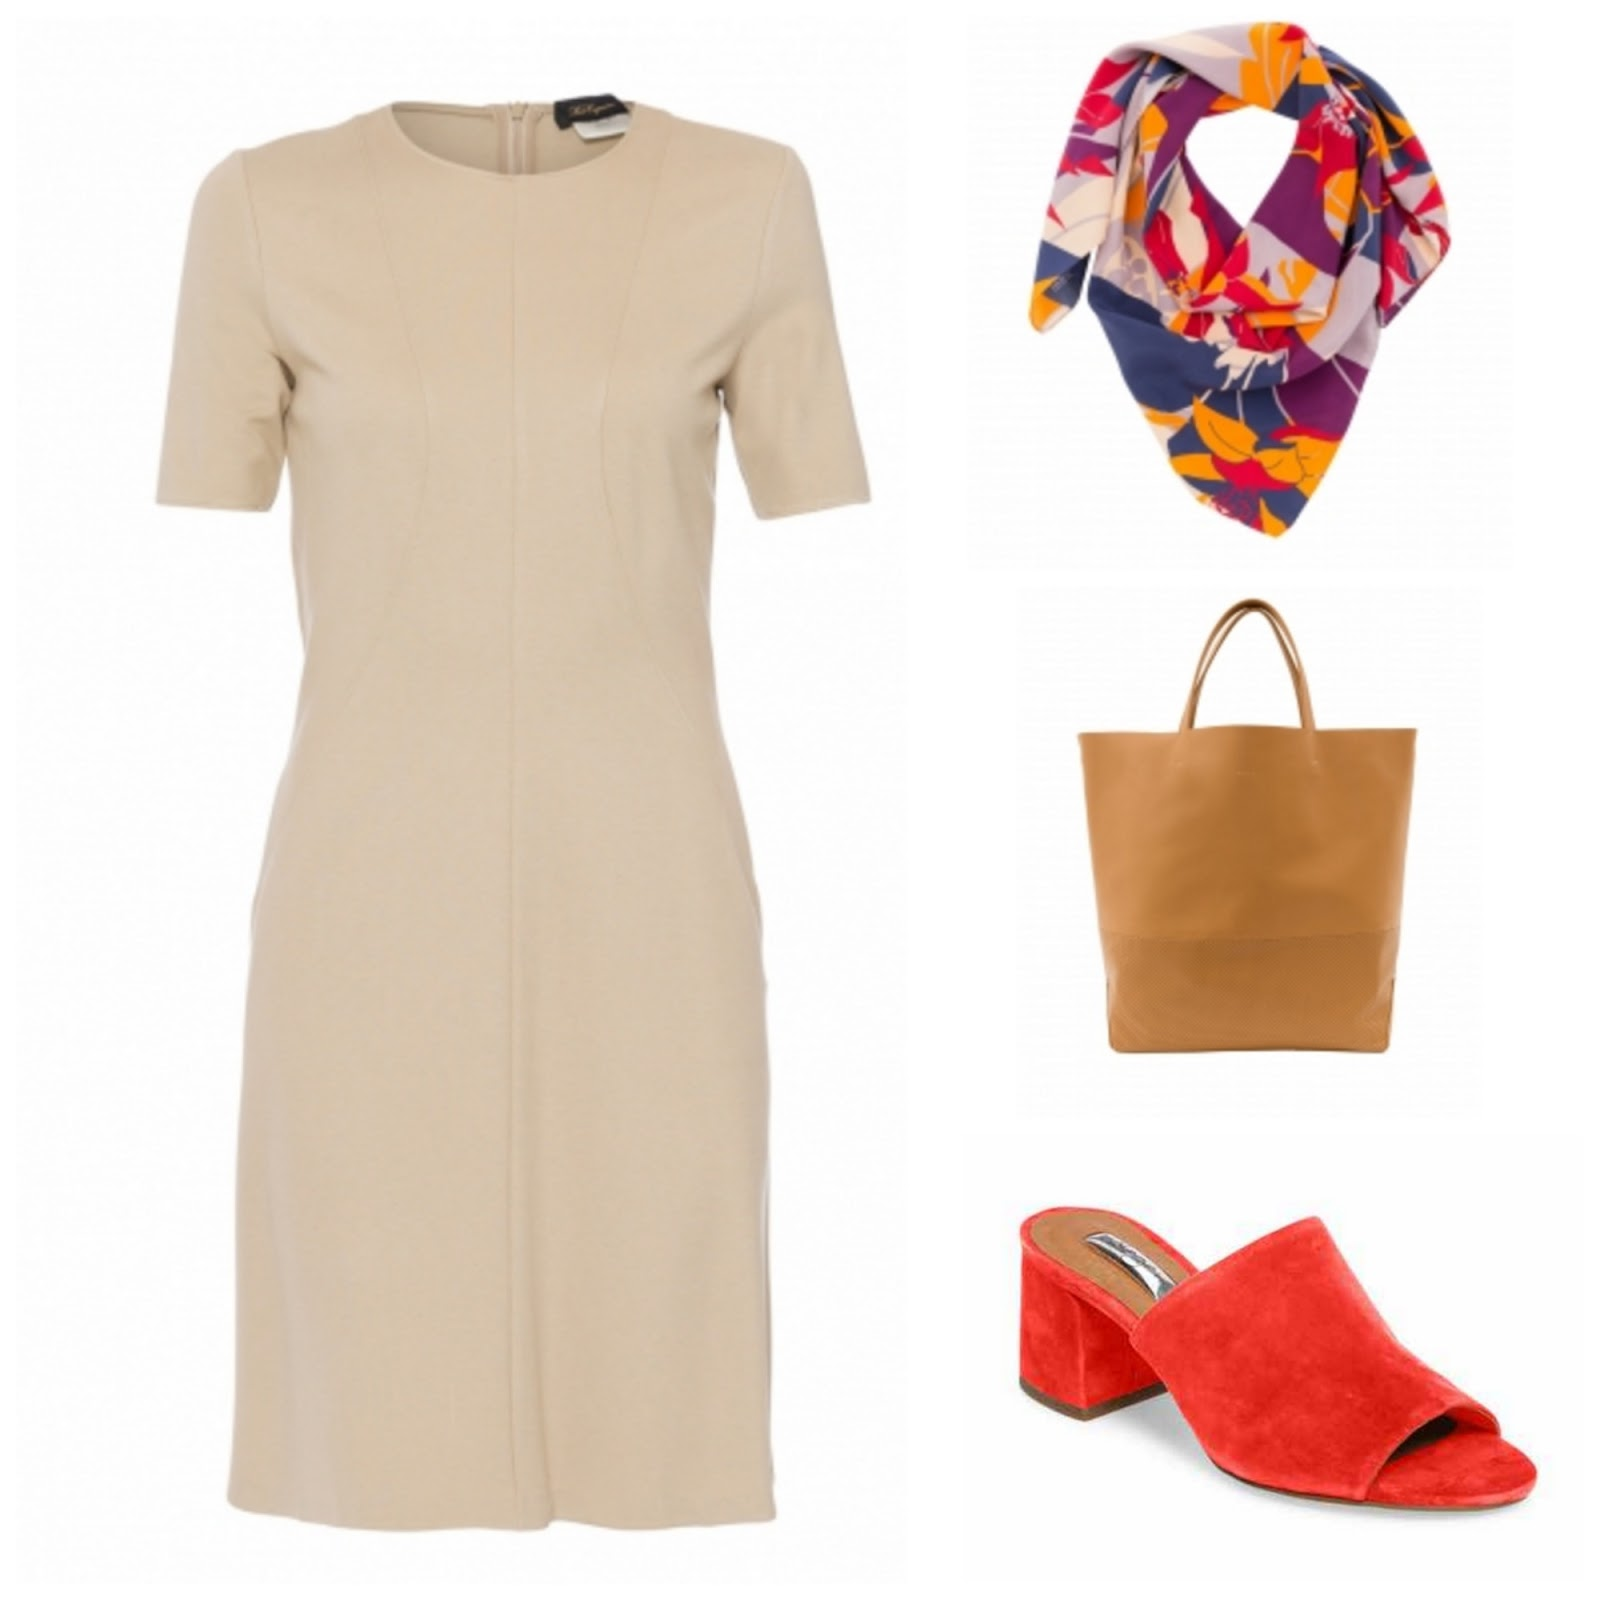 55bac69a8eb 7 Ways to Style a Neutral Dress featuring Halsbrook.com - The Daily ...